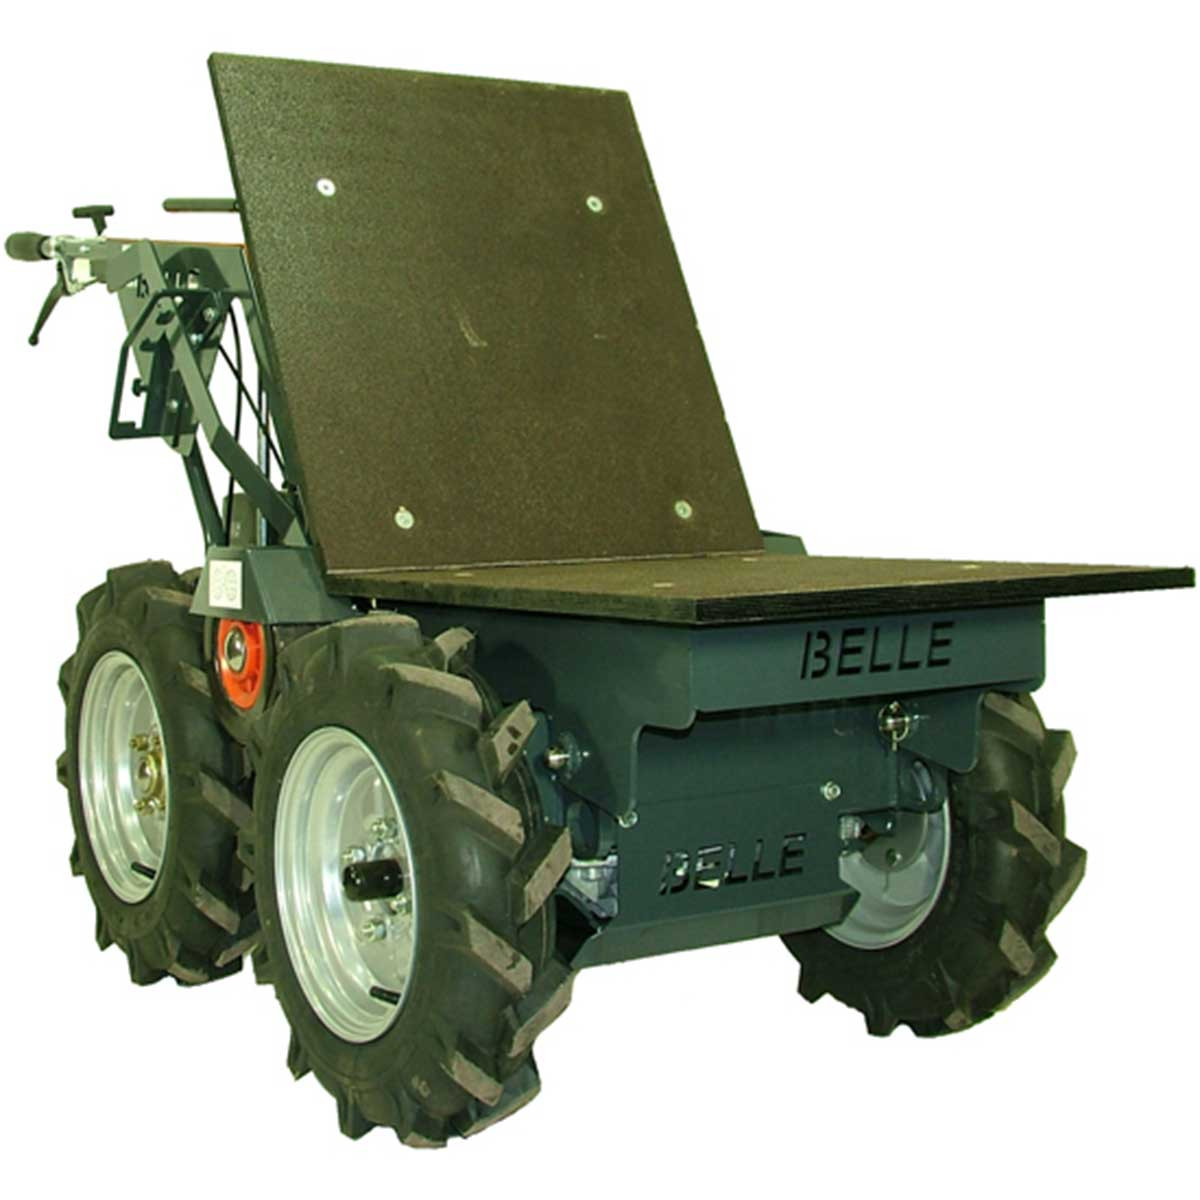 OPD/01/DIO Flatbed for BMD 300 Mini Dumper